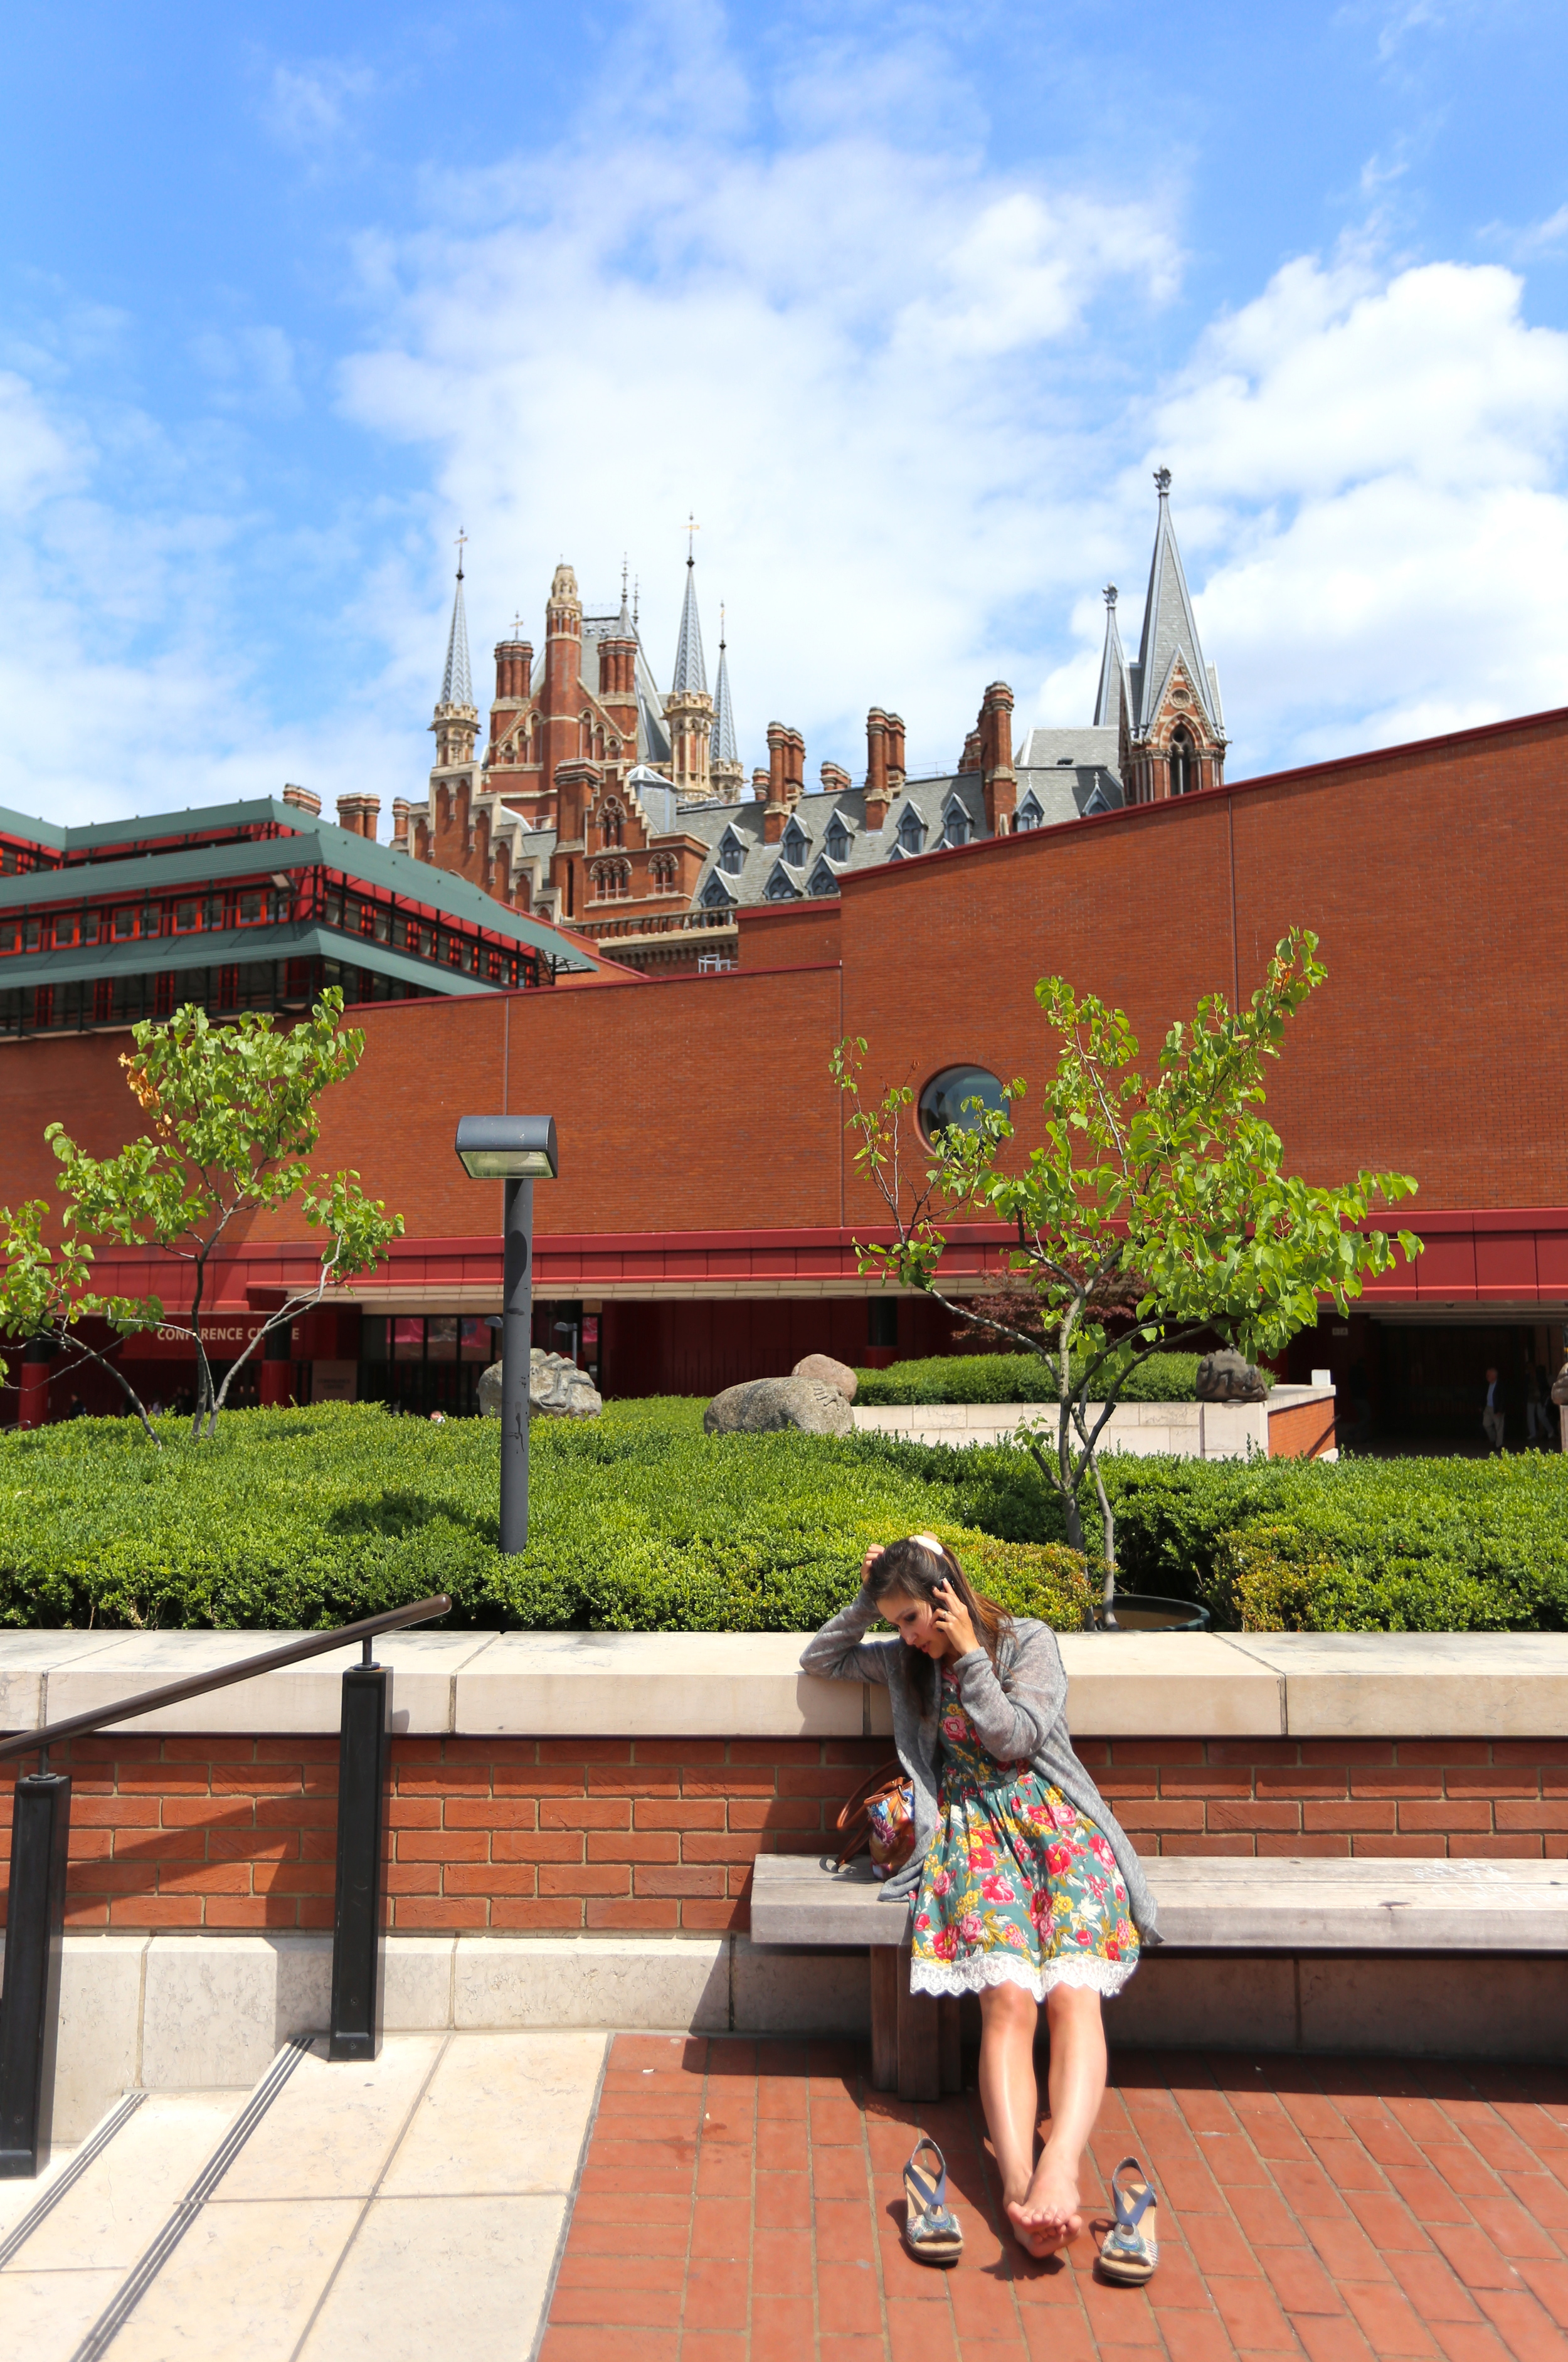 Outside the London Library, with the spires of Saint Pancras.